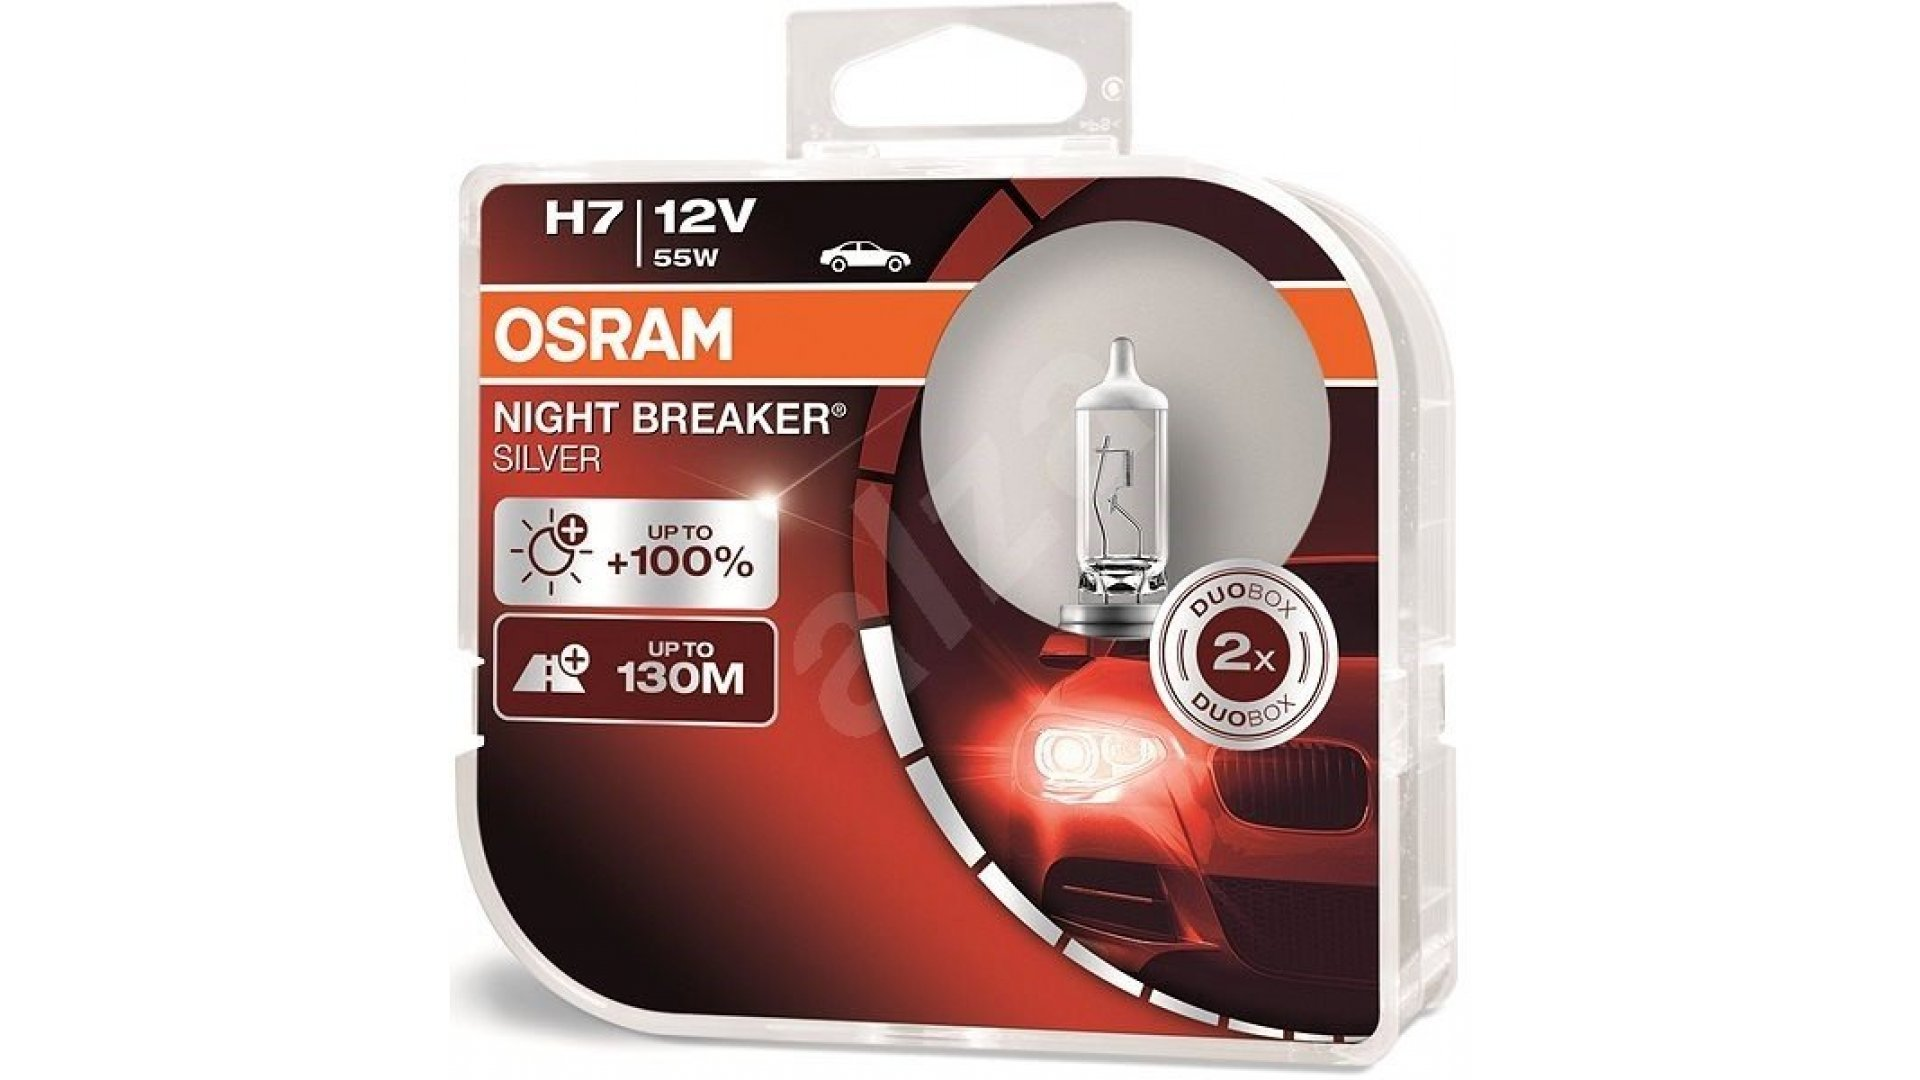 OSRAM Žárovka 12V 55W PX26D H7 NIGHT BREAKER® SILVER BOX